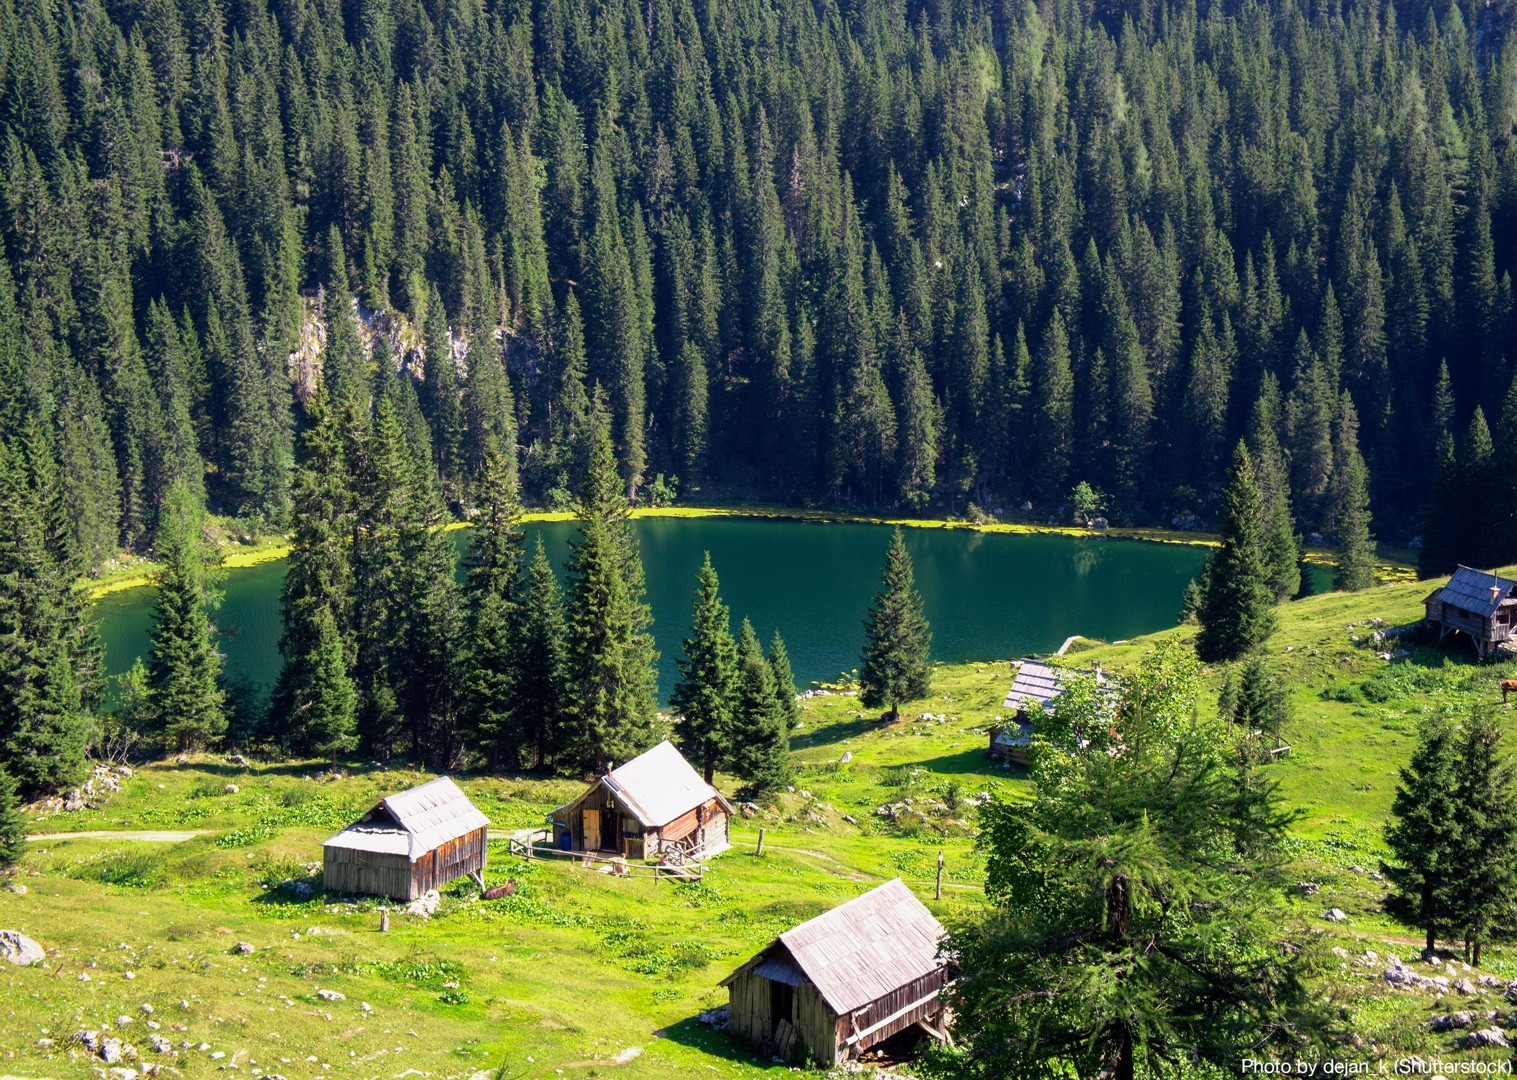 leisure-cycling-holiday-in-slovenia-capital-to-coast.jpg - NEW! Slovenia - Capital to Coast - Leisure Cycling